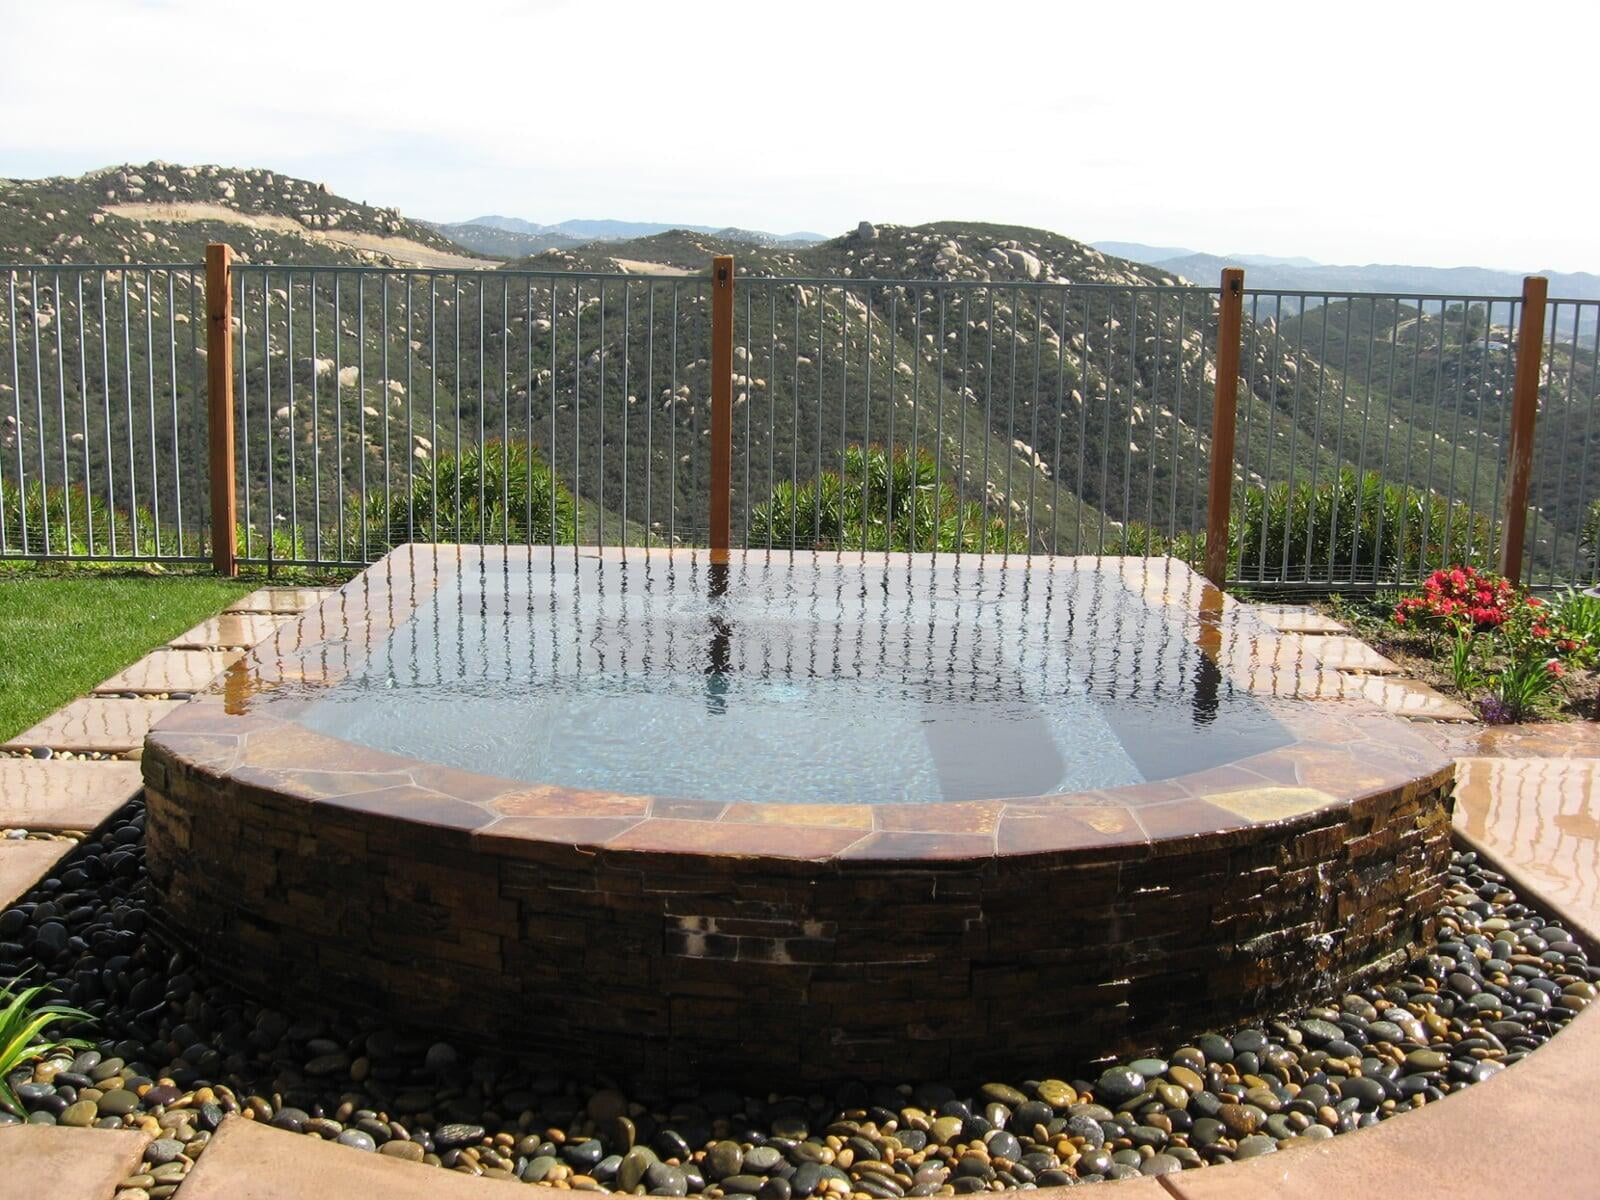 Spa with negative edge water feature